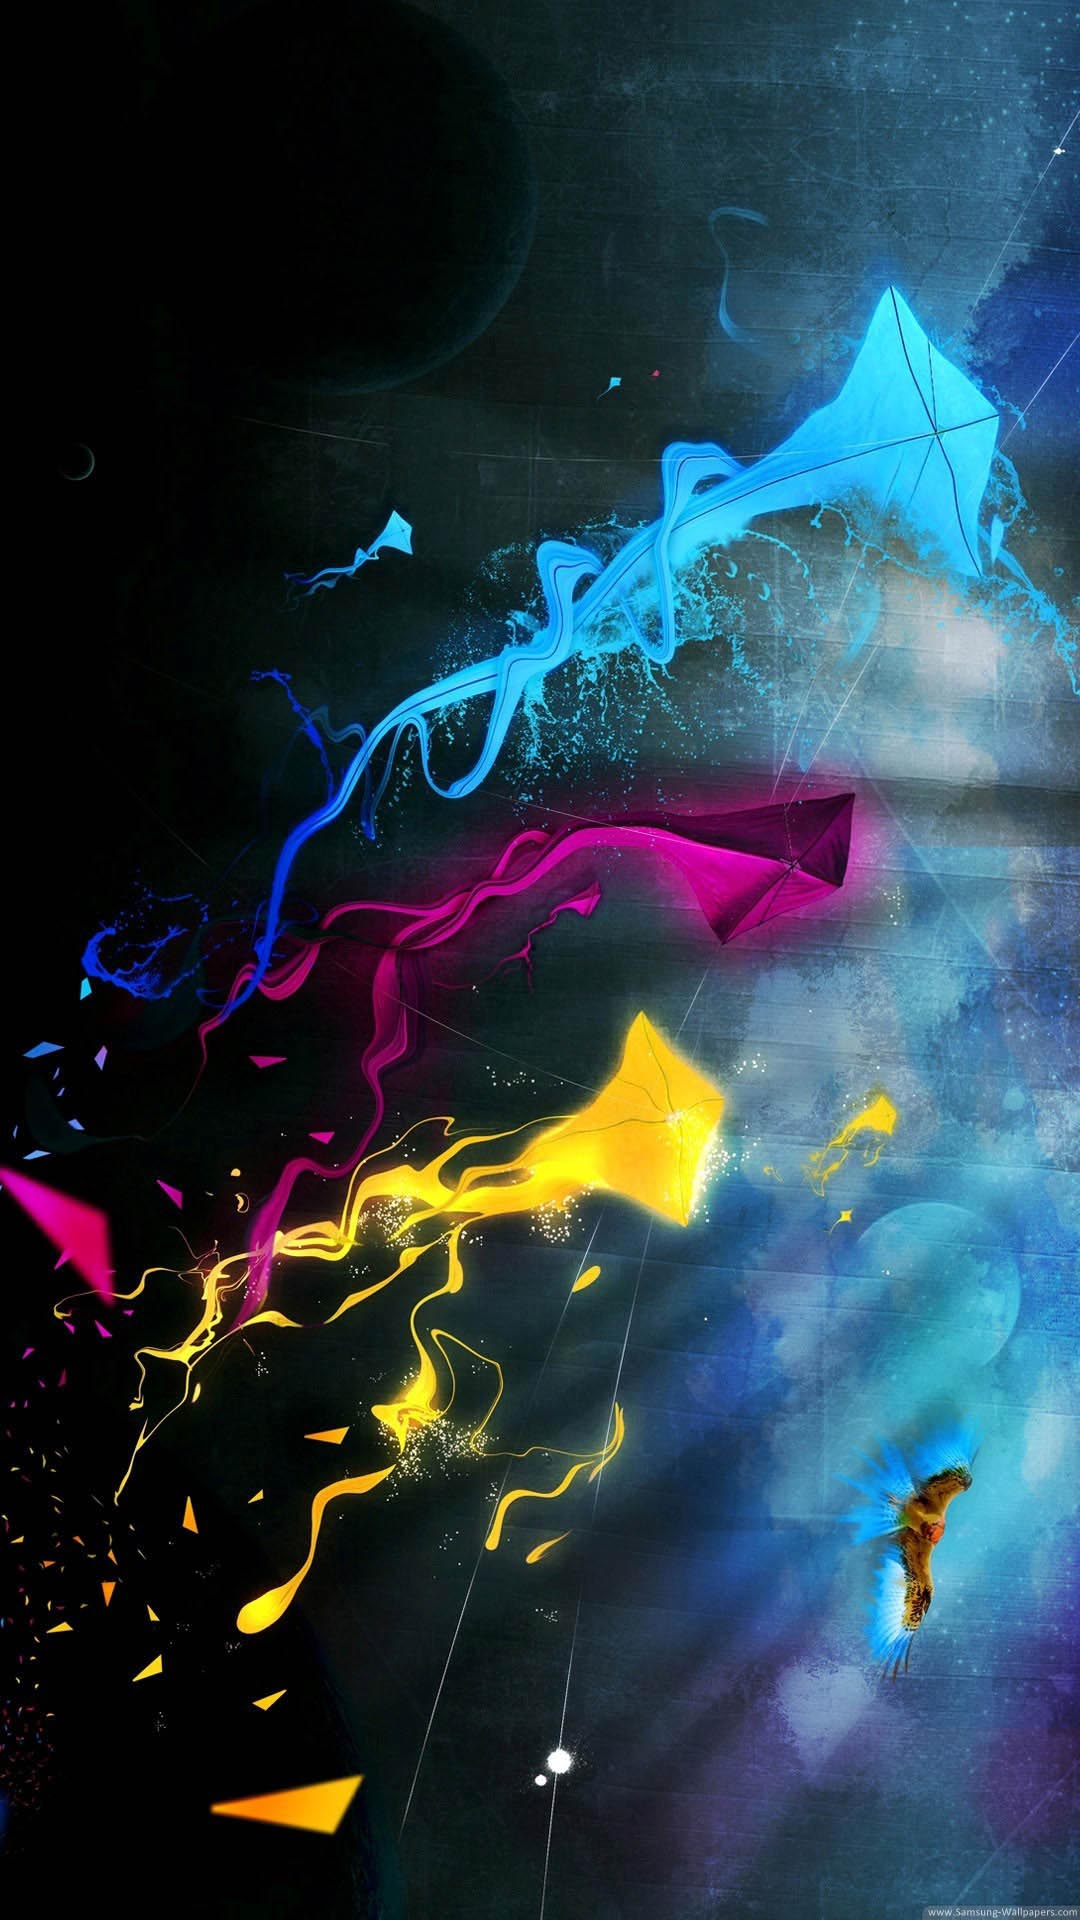 Stunning Samsung Galaxy S4 Wallpapers HD Free Download